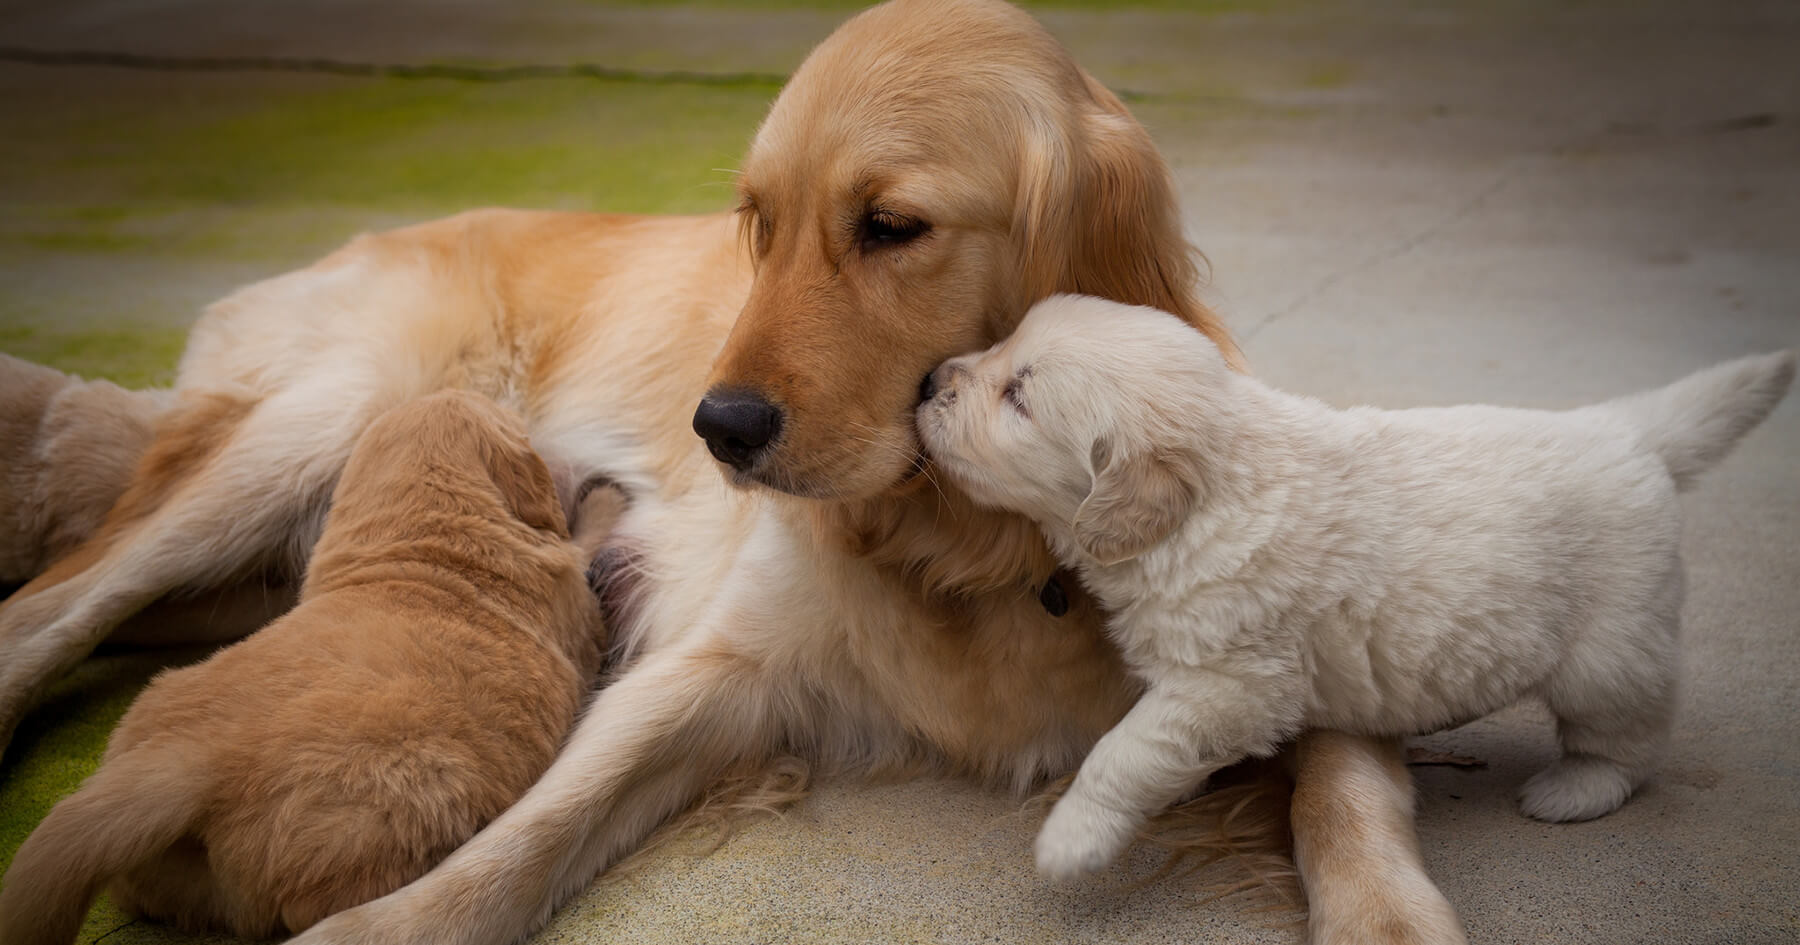 A young Golden Retriever pup nuzzles his mom while another puppy is nursing